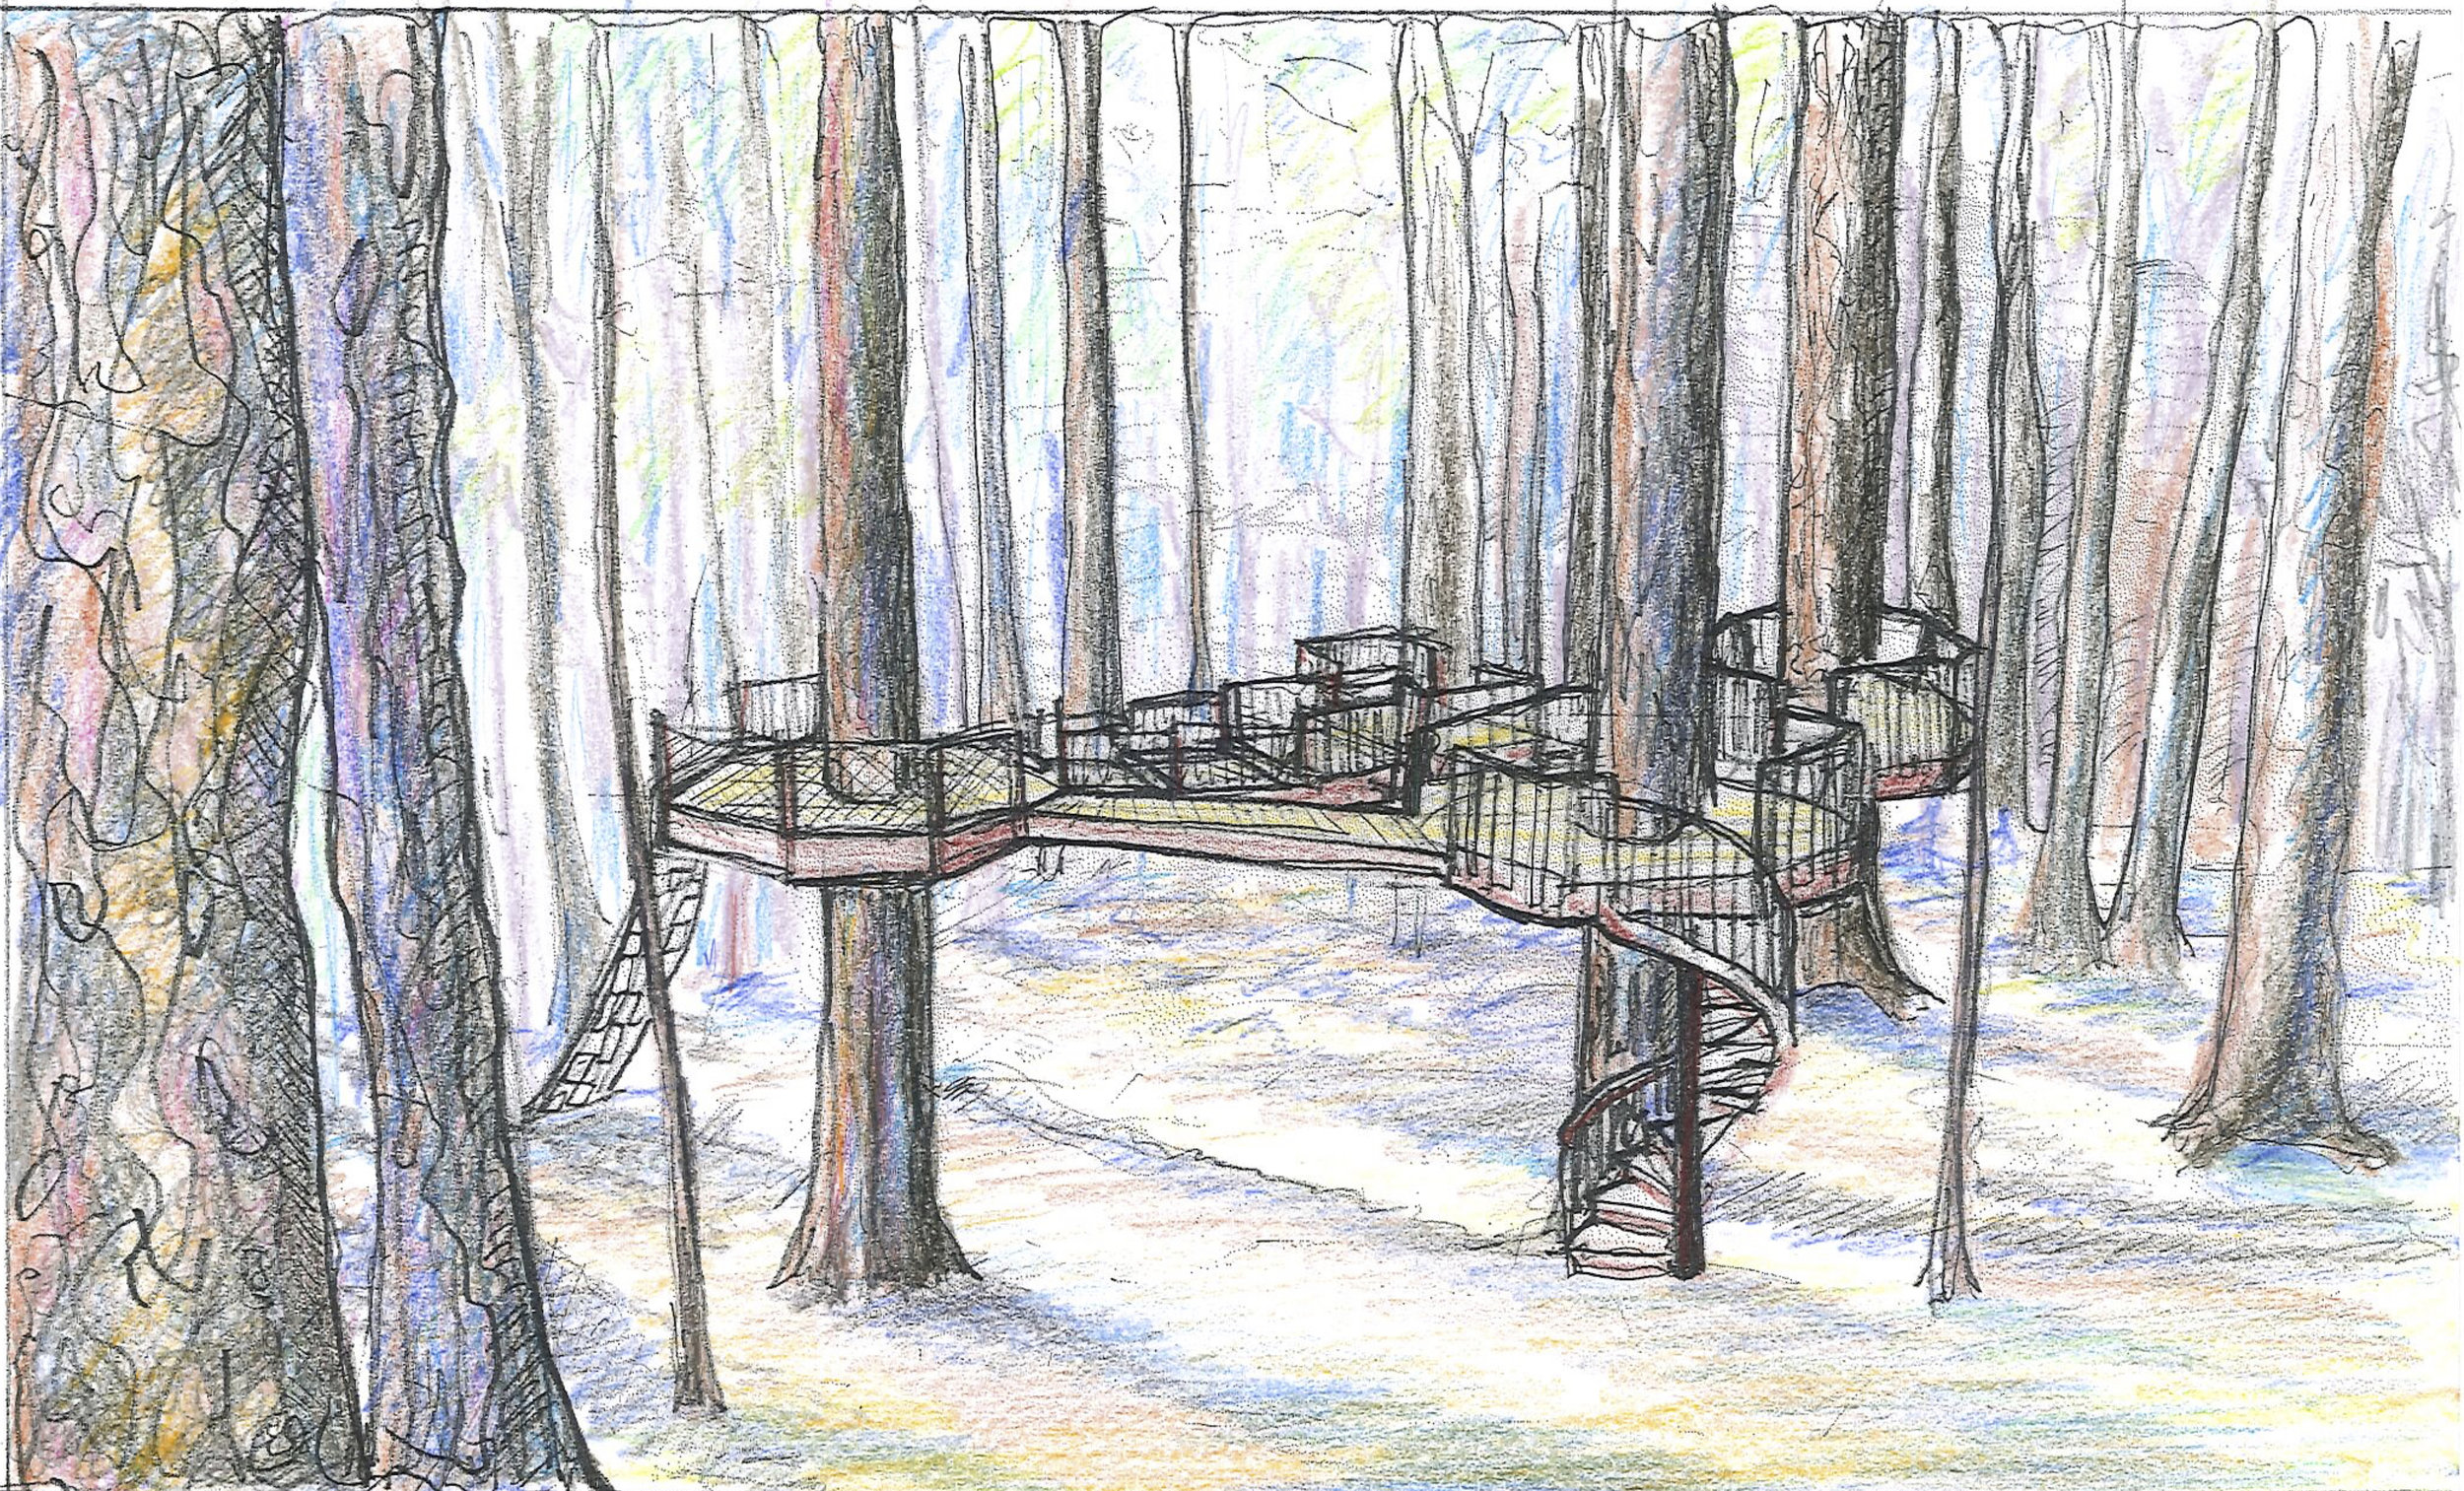 Illustration of completed Treehouse Platforms